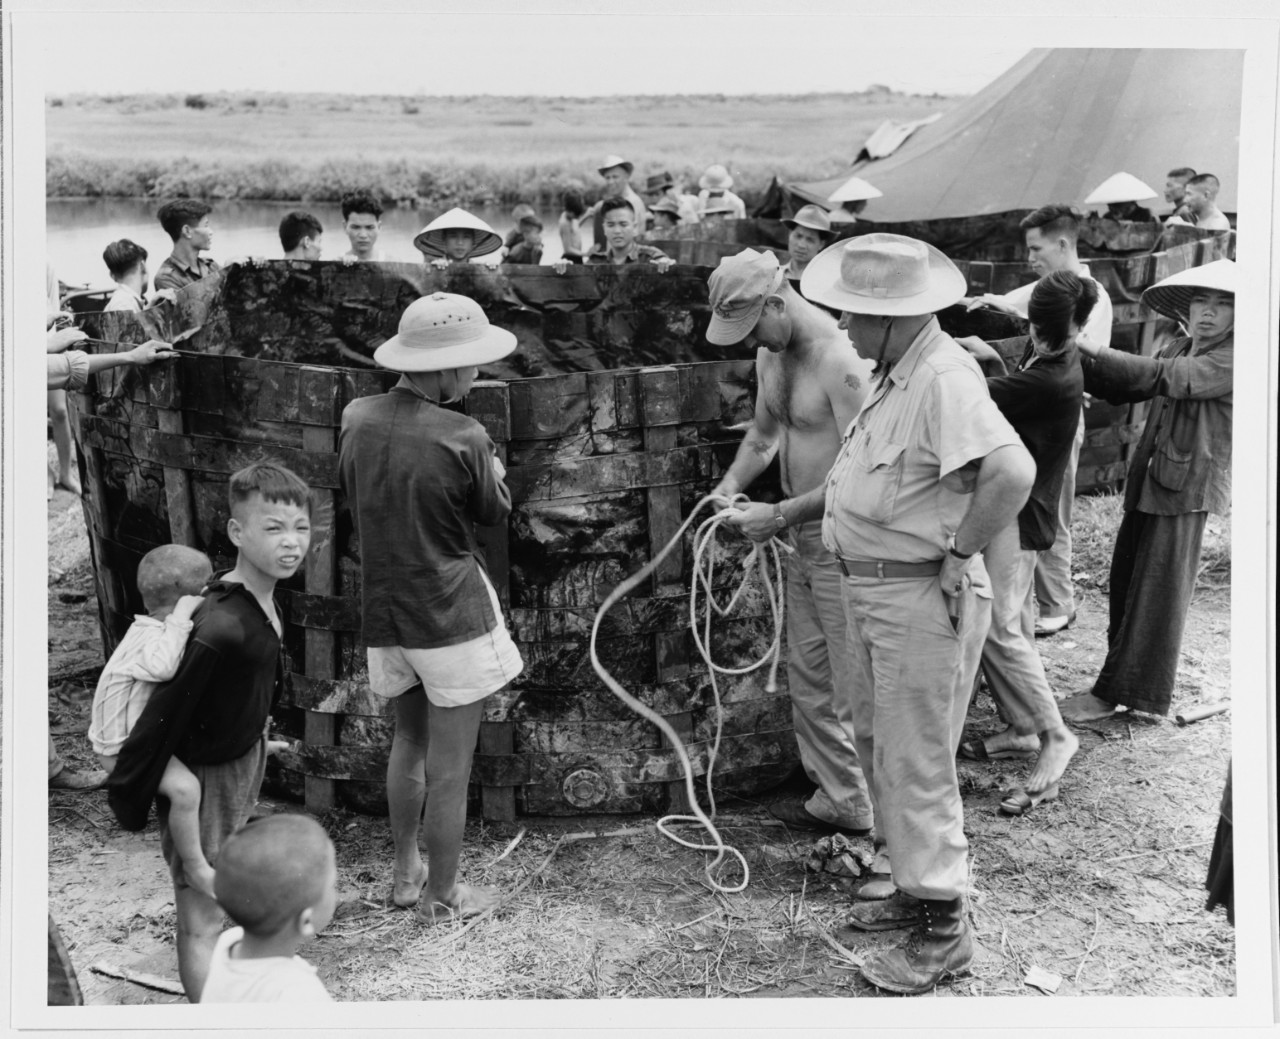 Vietnamese refugee camp